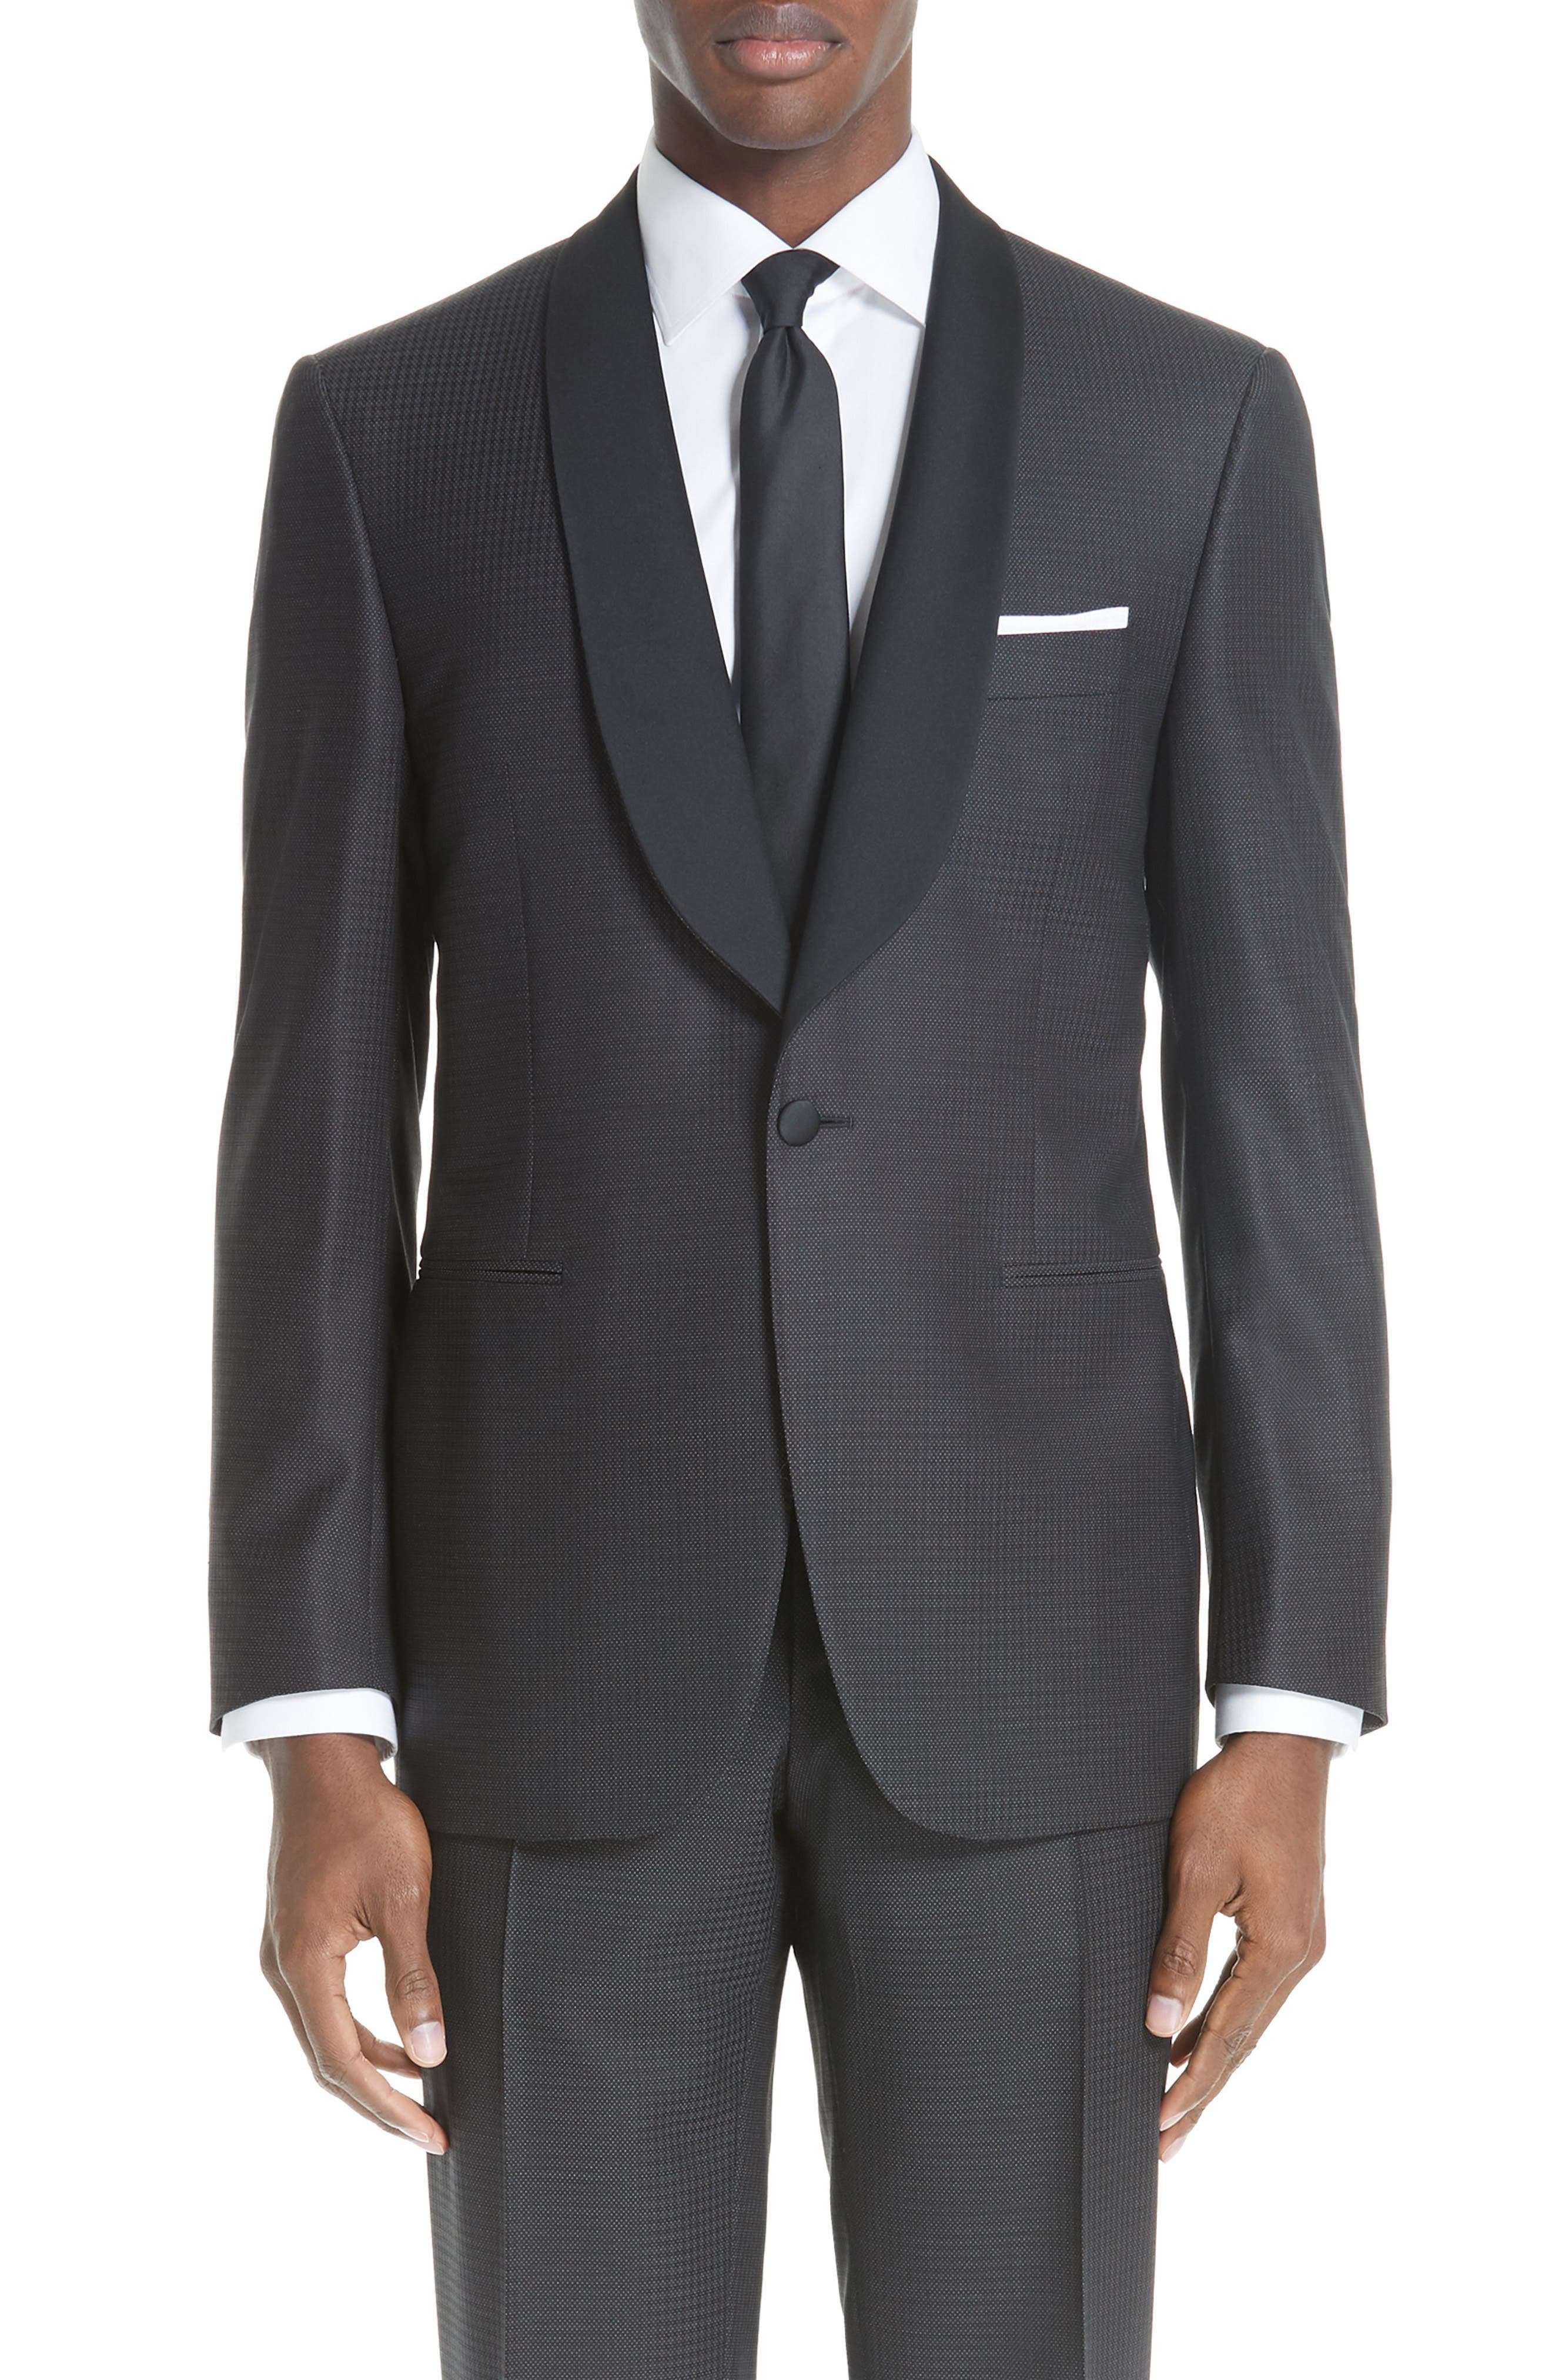 CANALI, Classic Fit Wool Tuxedo, Alternate thumbnail 5, color, CHARCOAL